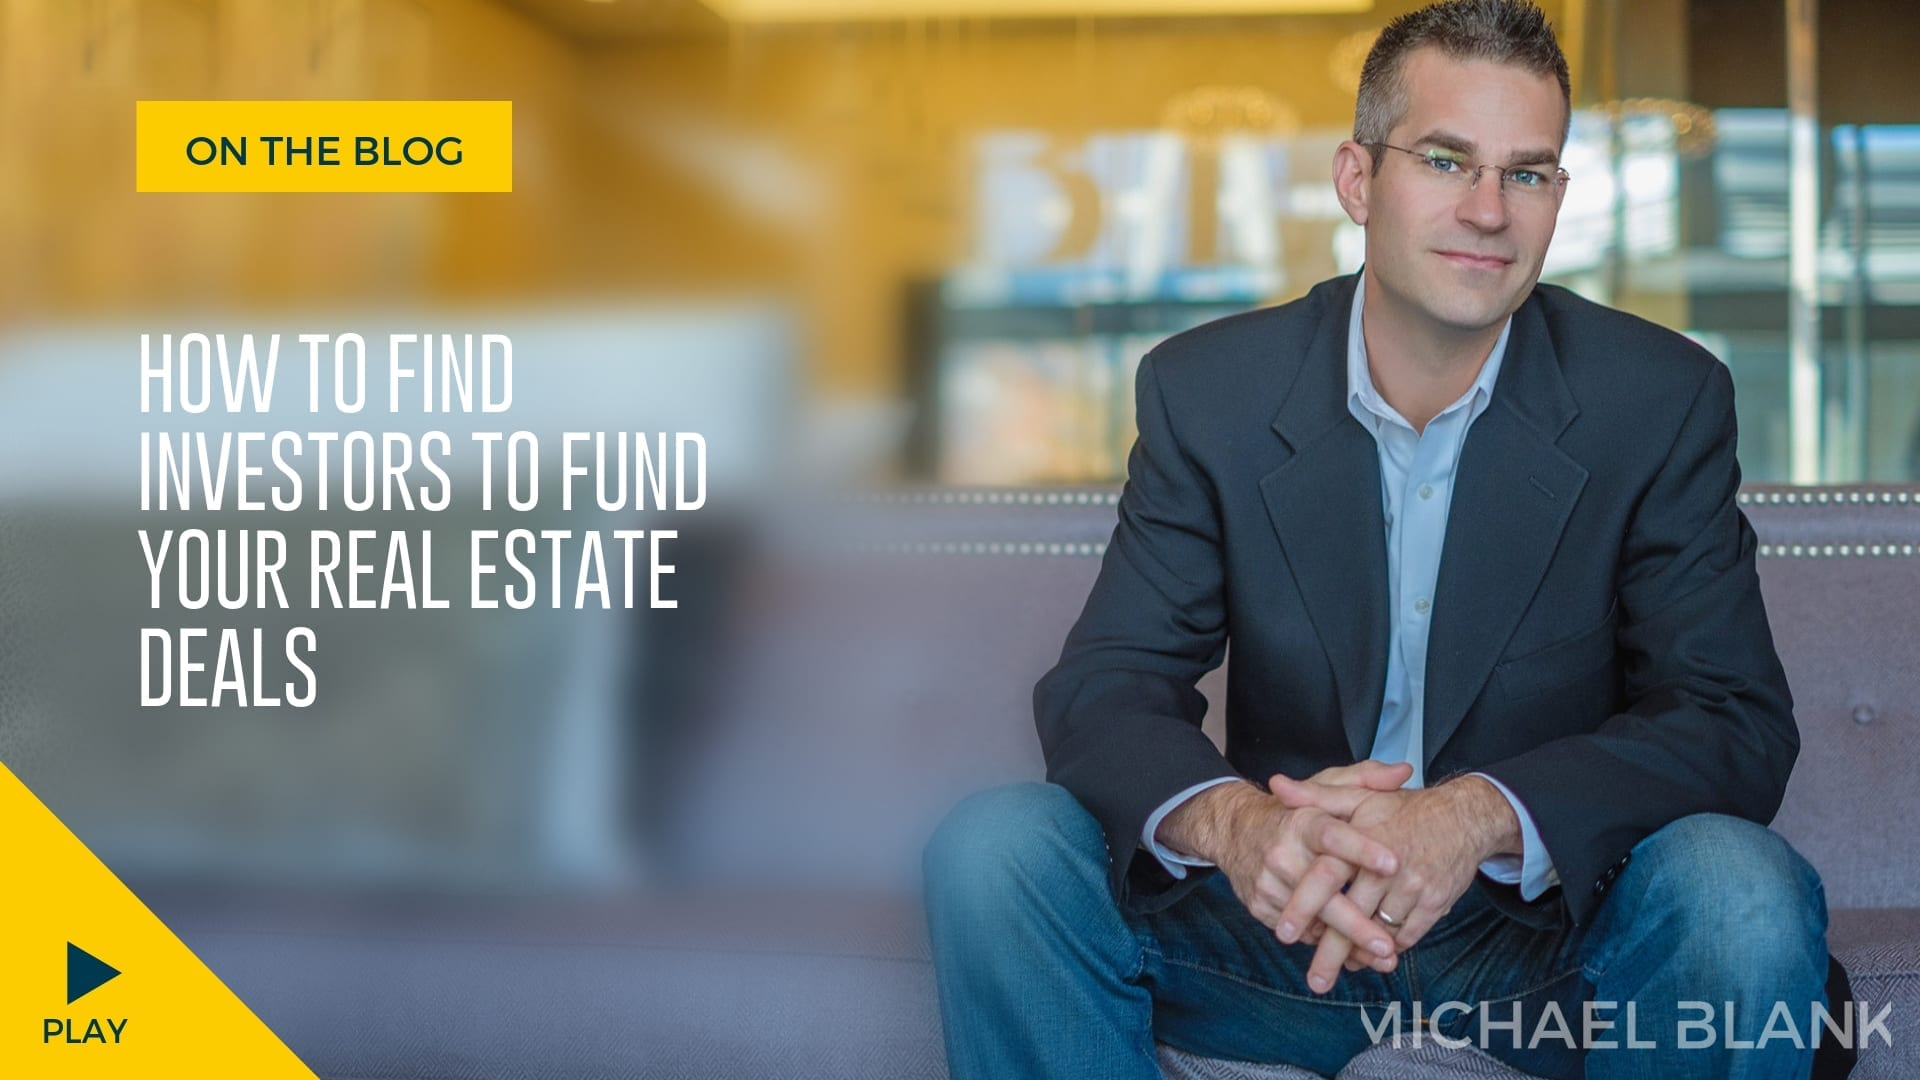 How to Find Investors To Fund Your Real Estate Deals